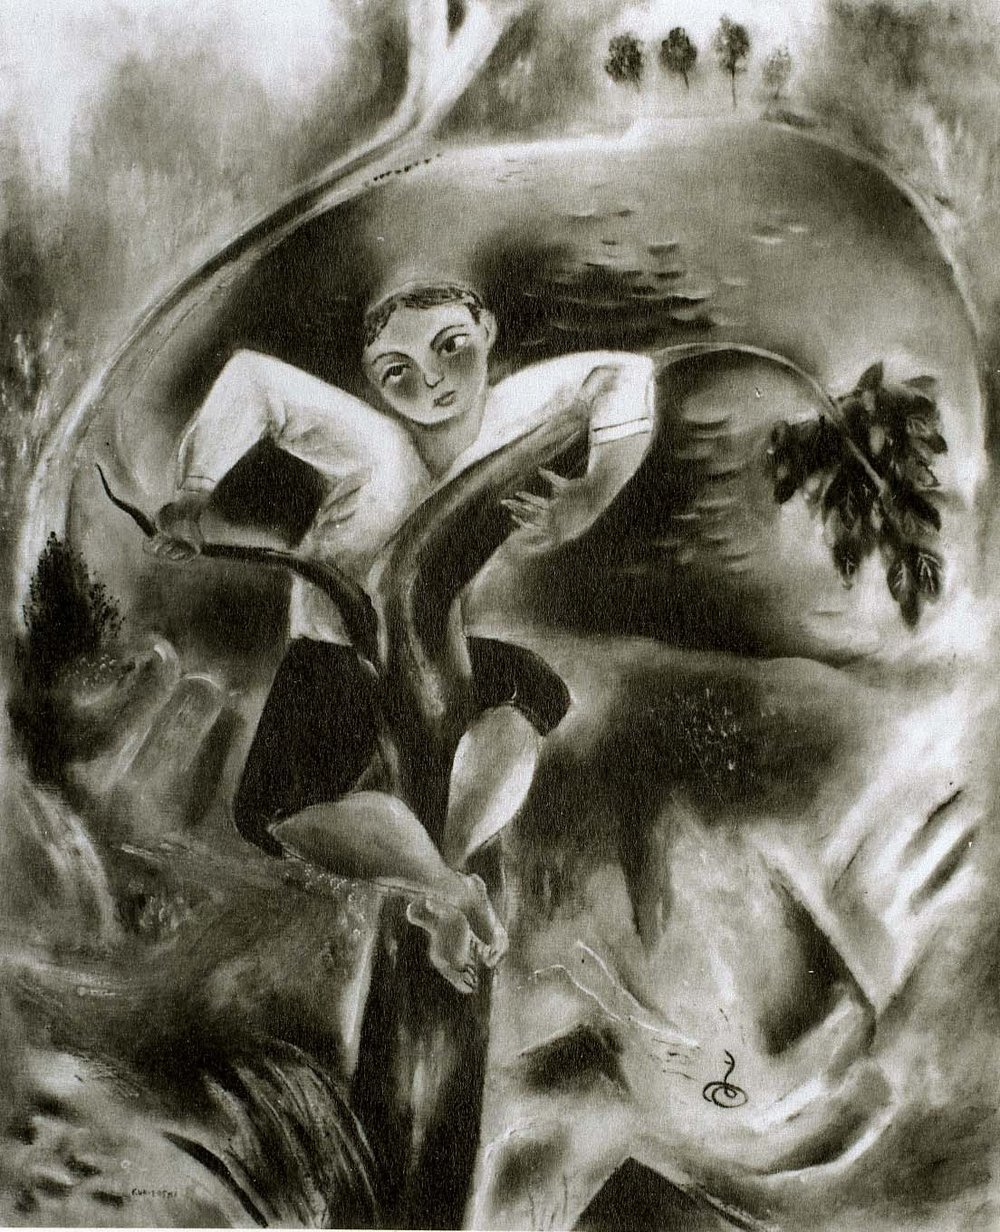 Boy Frightened by Snake, 1922